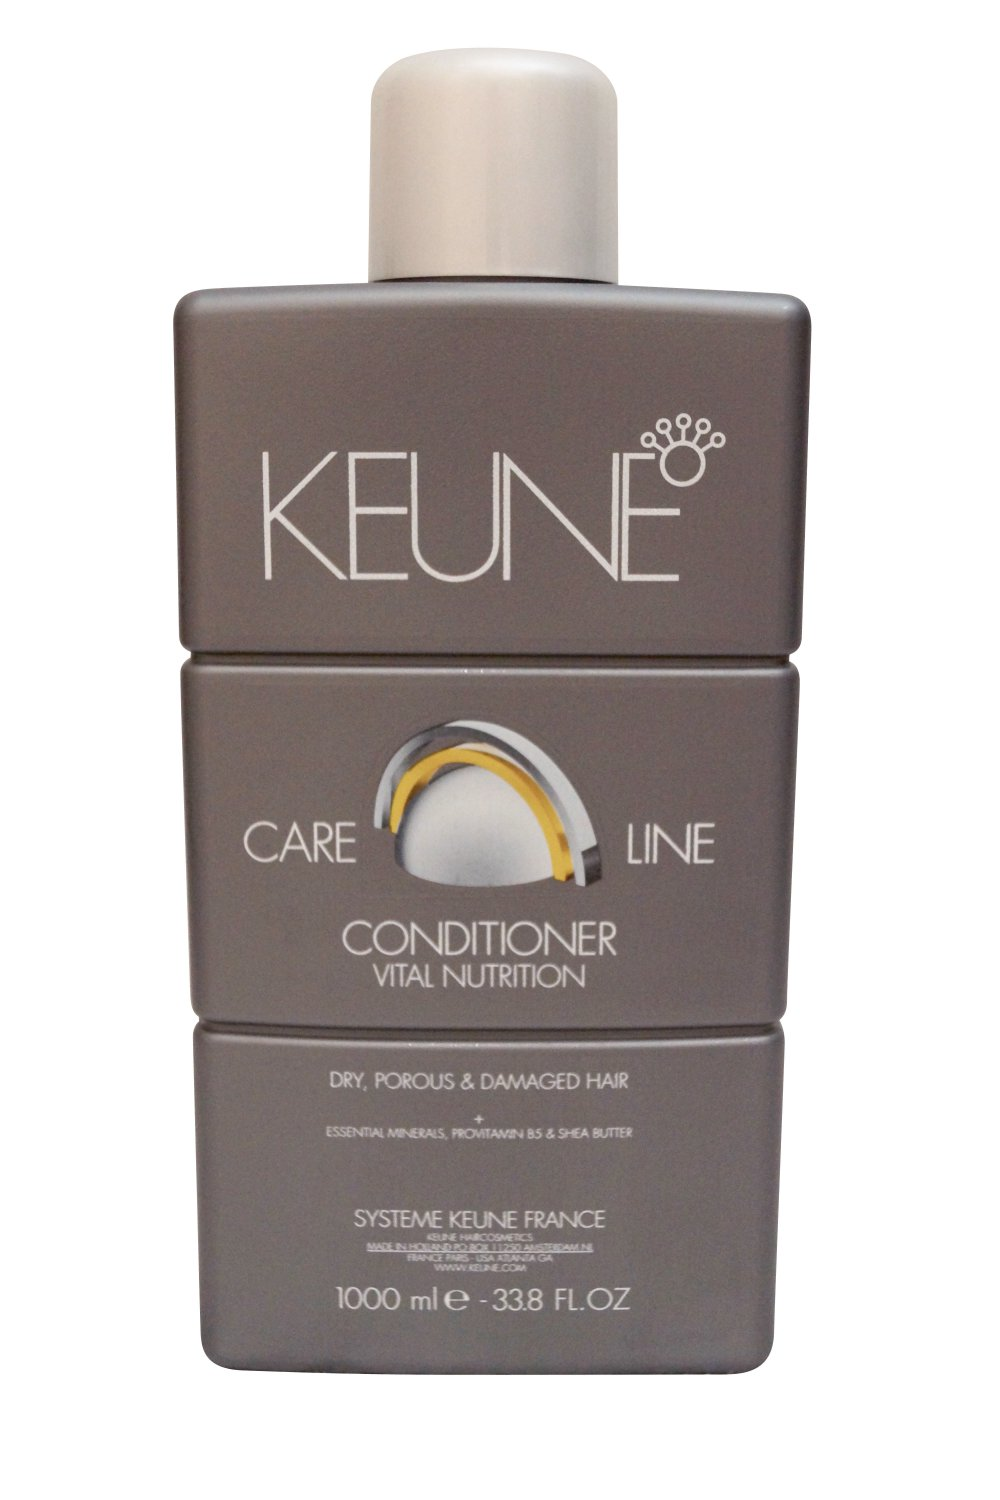 Keune Care Line Vital Nutrition Conditioner Dry, Porous & Damaged 33.8 oz